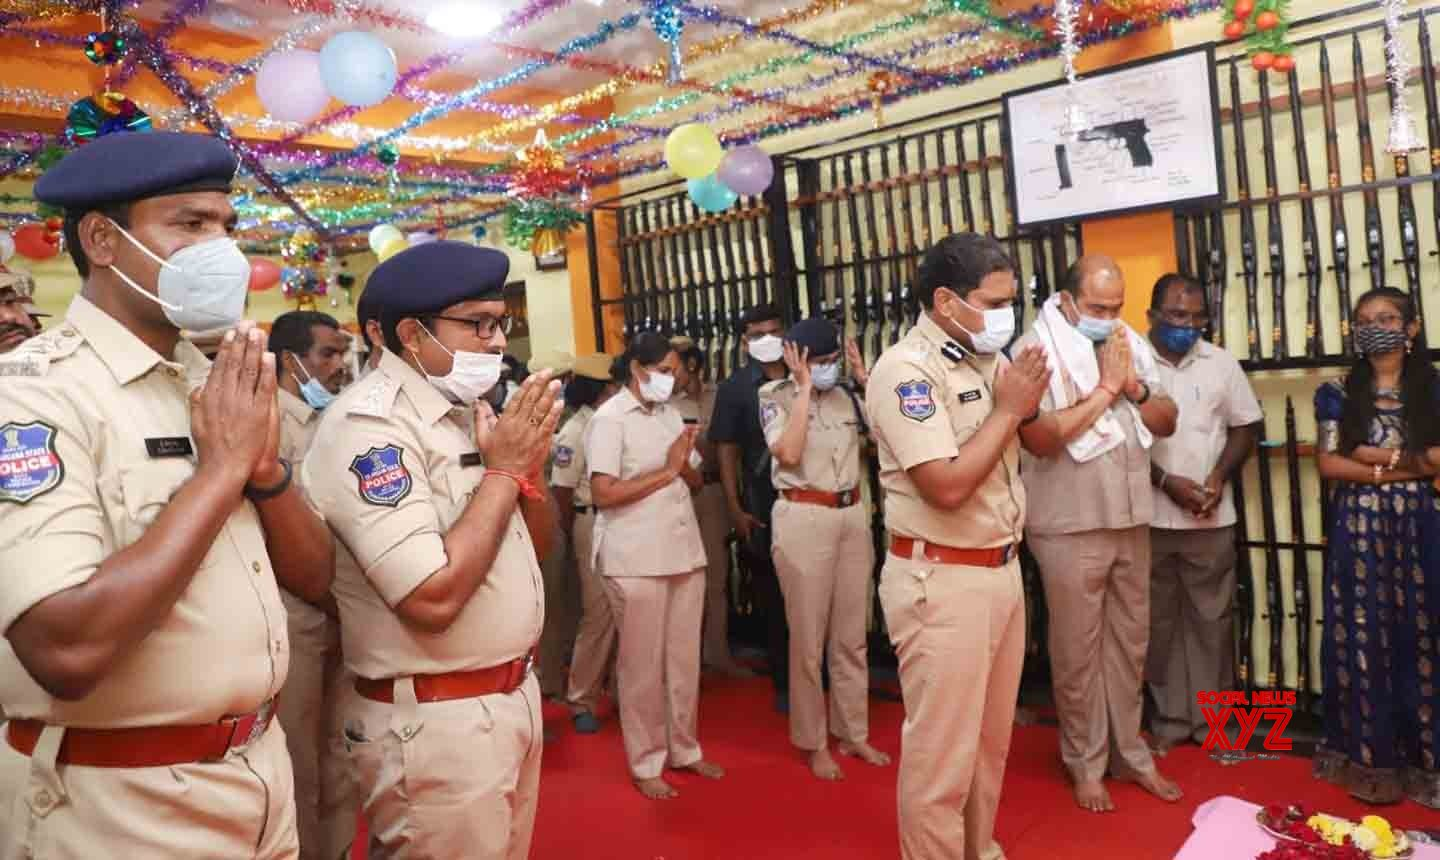 Hyderabad:Cyberabad Police observed Ayudha Puja and celebrated Navratri festival at the Commissioner's office #Gallery